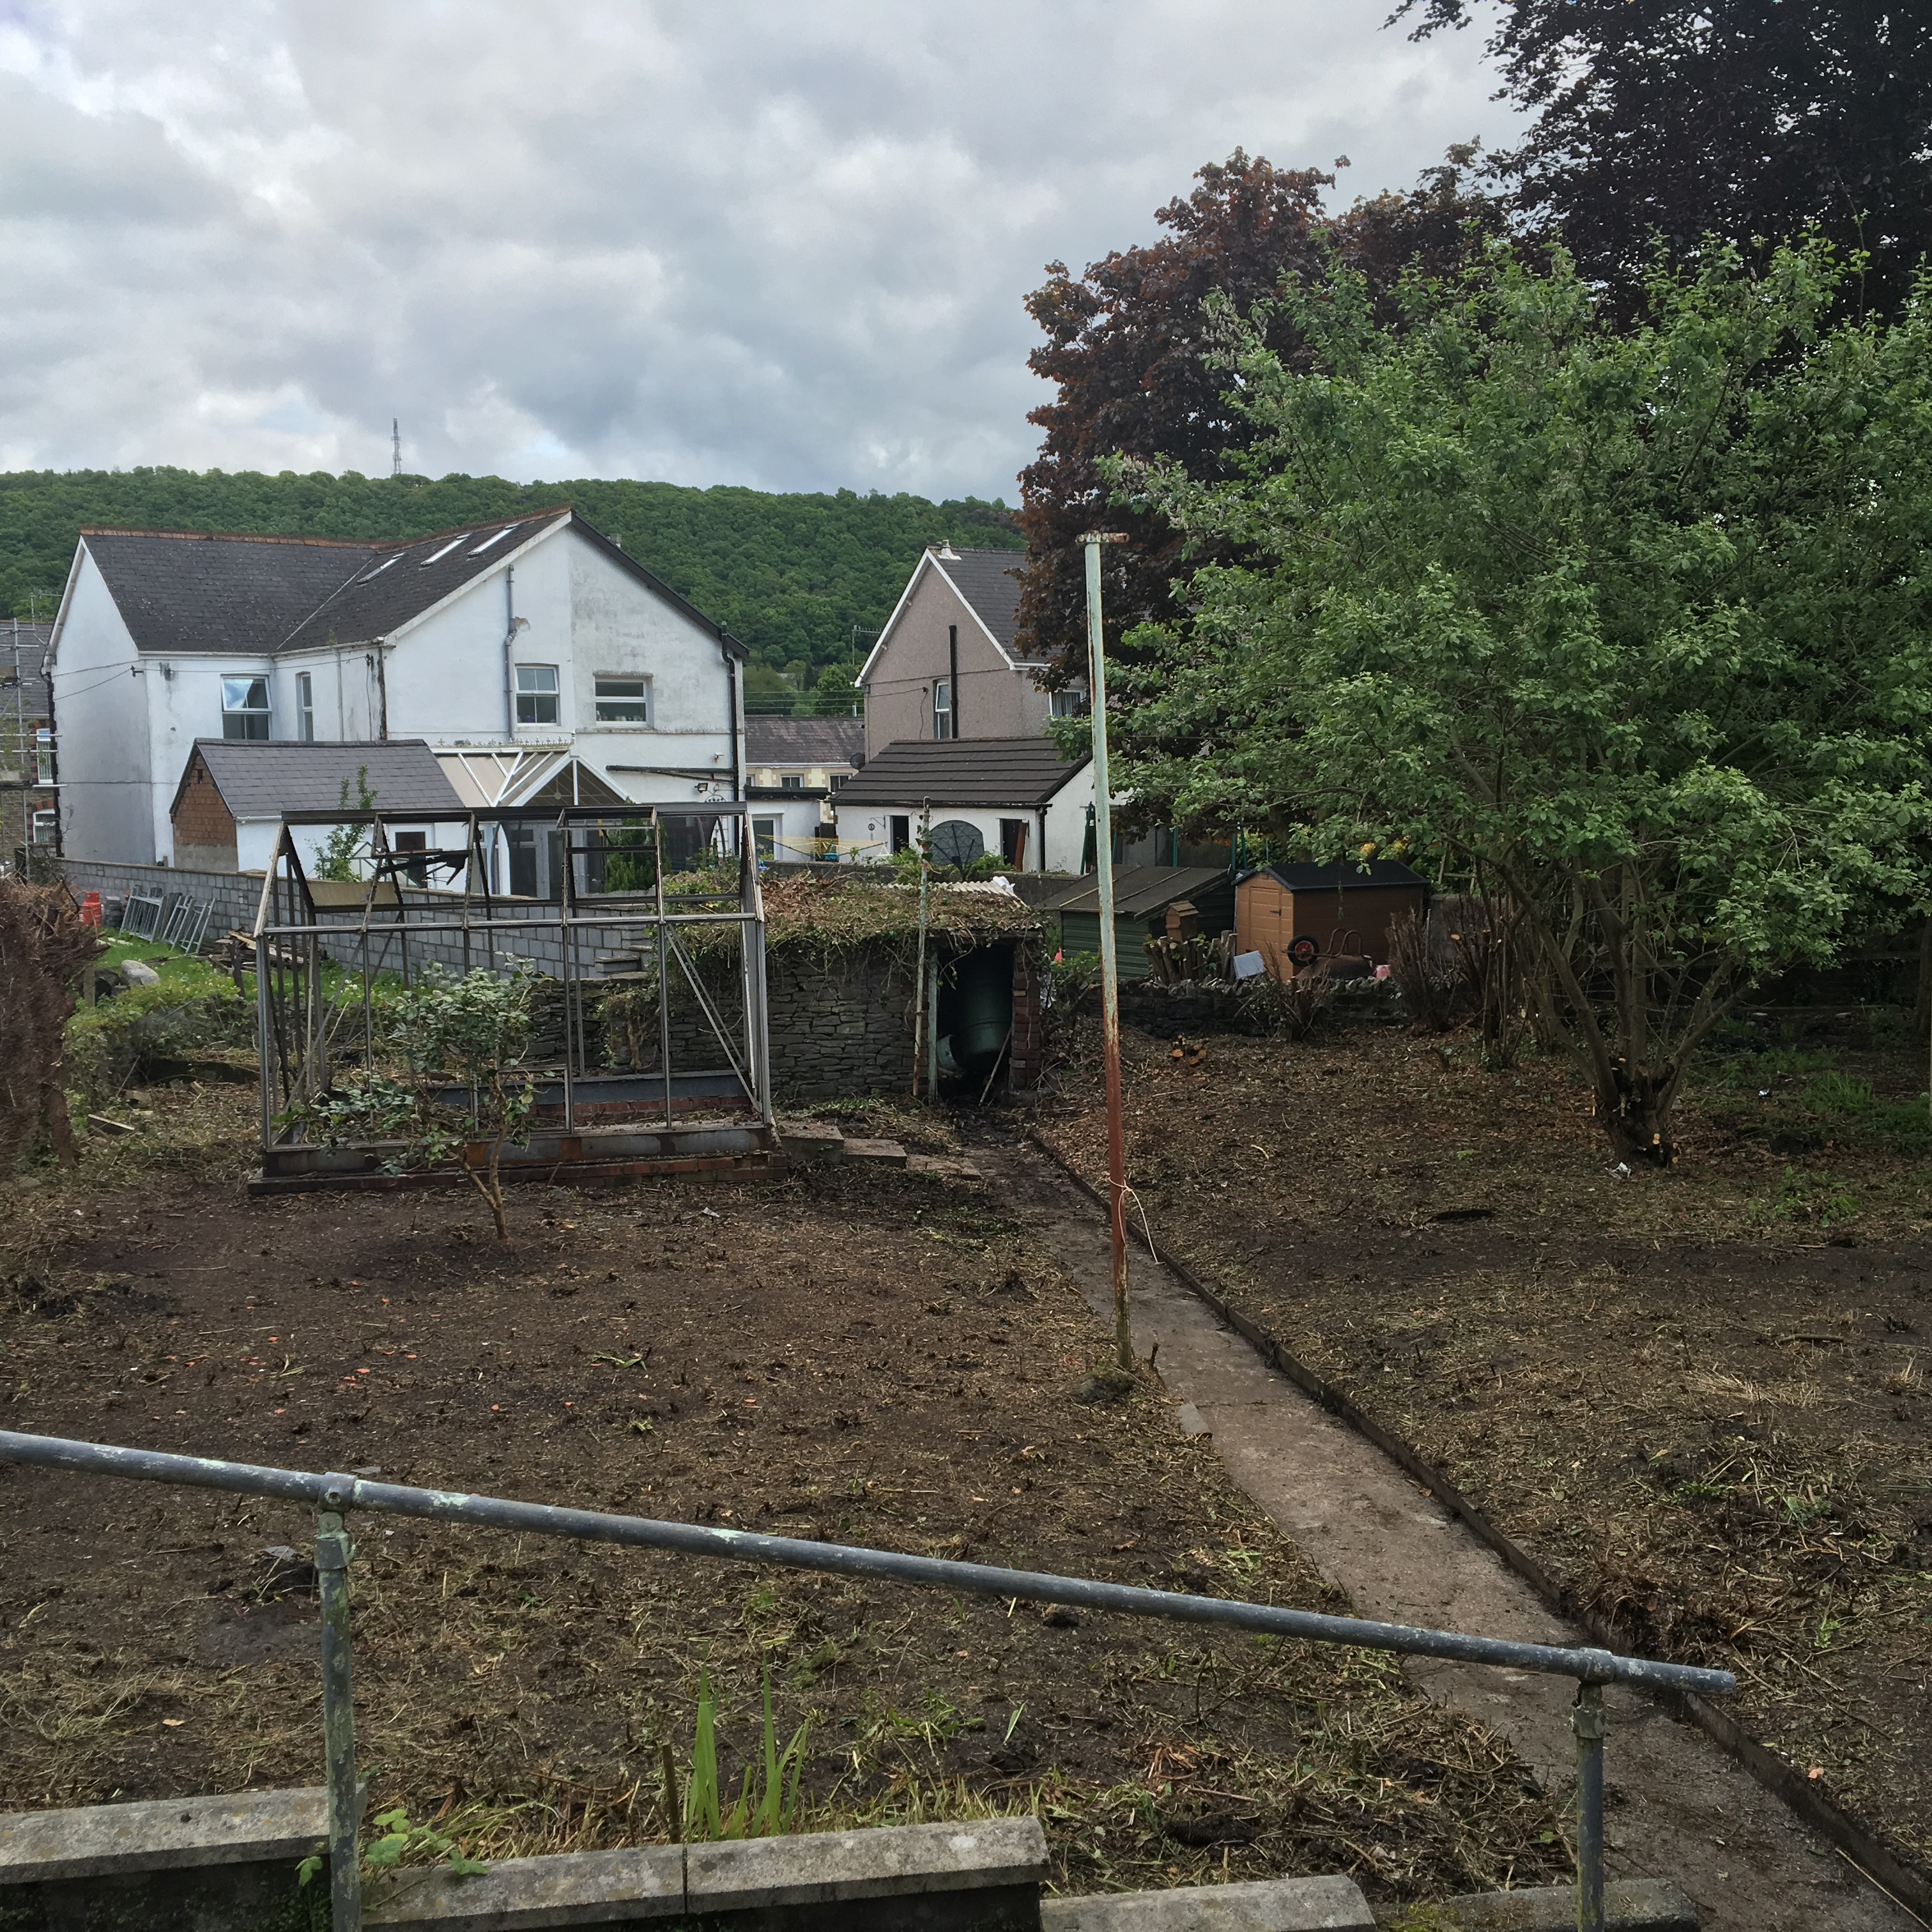 Garden Cleared For The Council